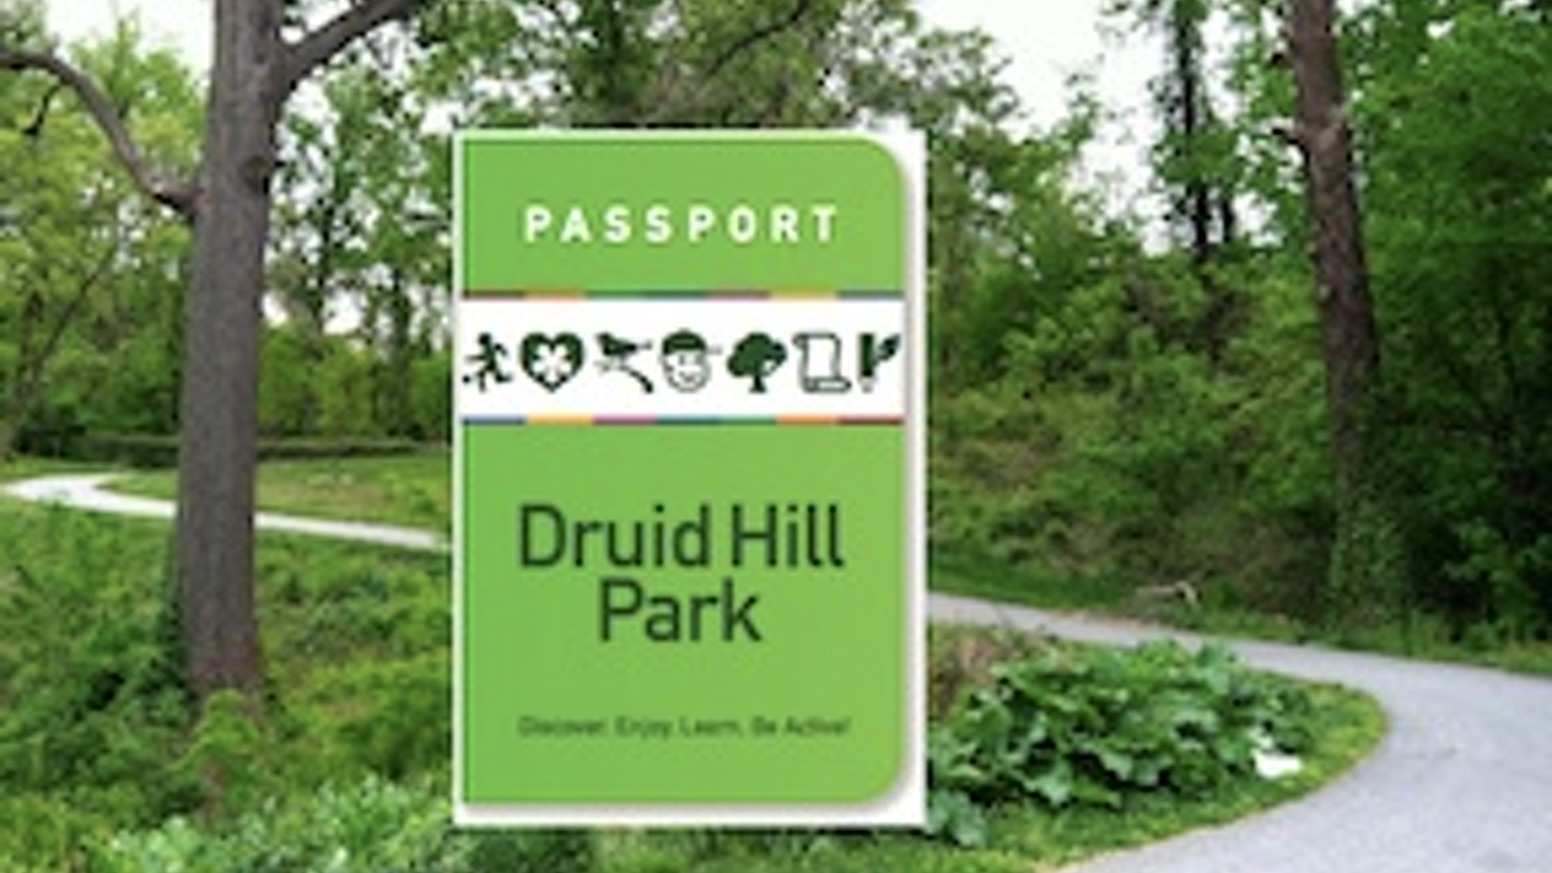 Druid Hill Park Passport: Discover; Enjoy; Learn; Be Active!